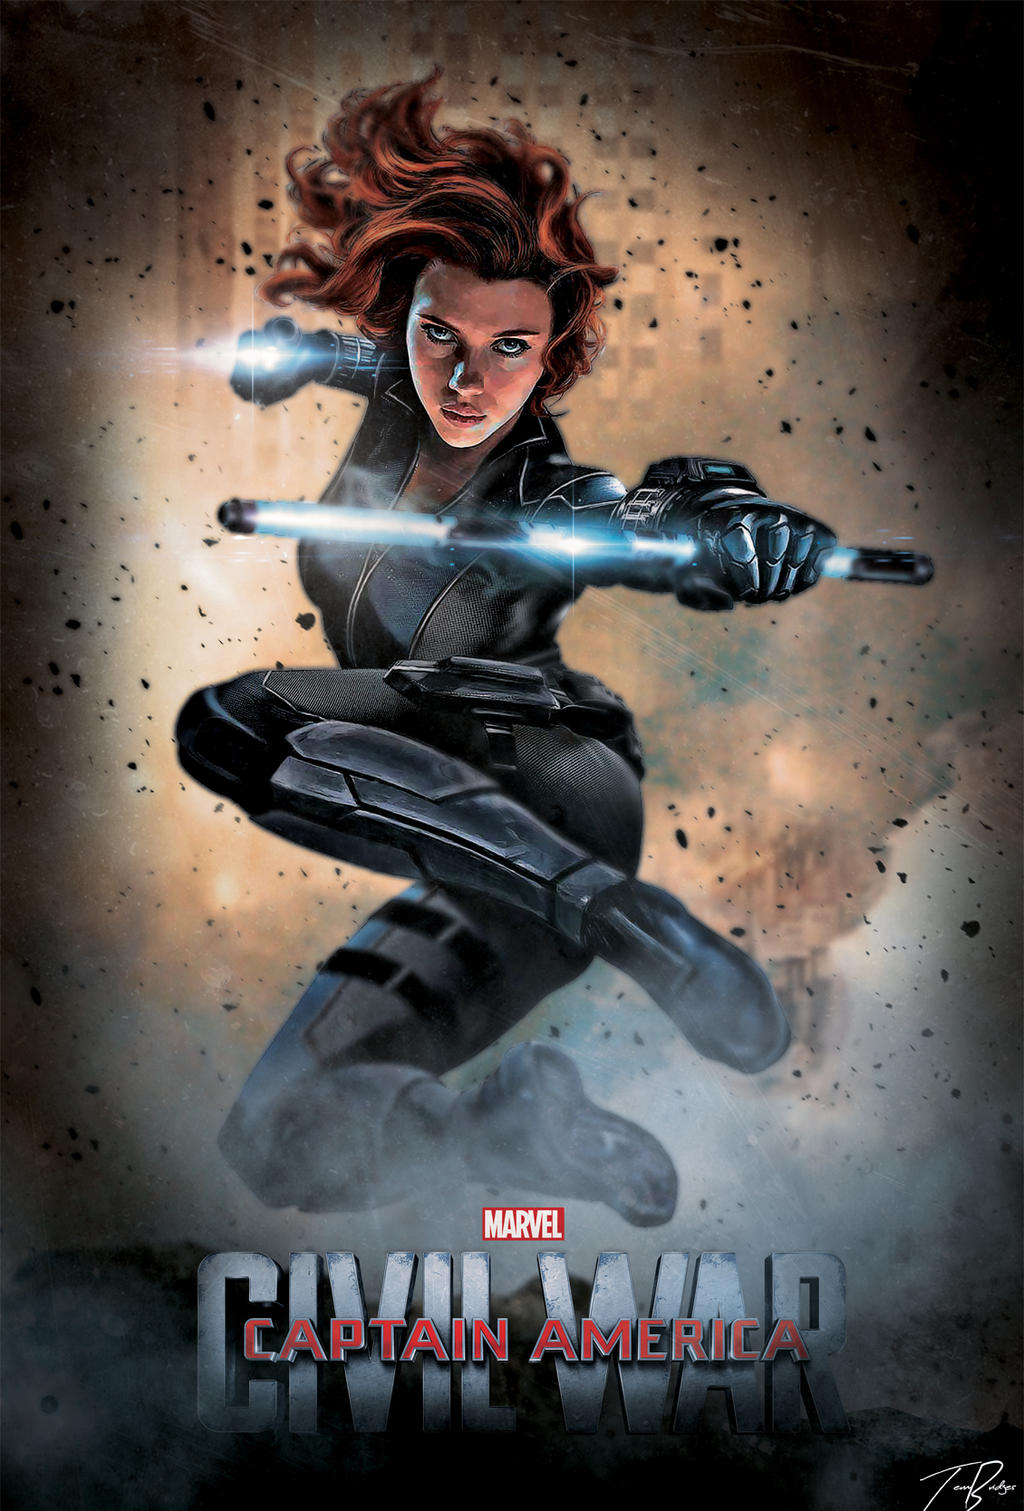 Captain America Civil War Poster : Black Widow 2 by HZ ...Captain America 2 Poster Black Widow